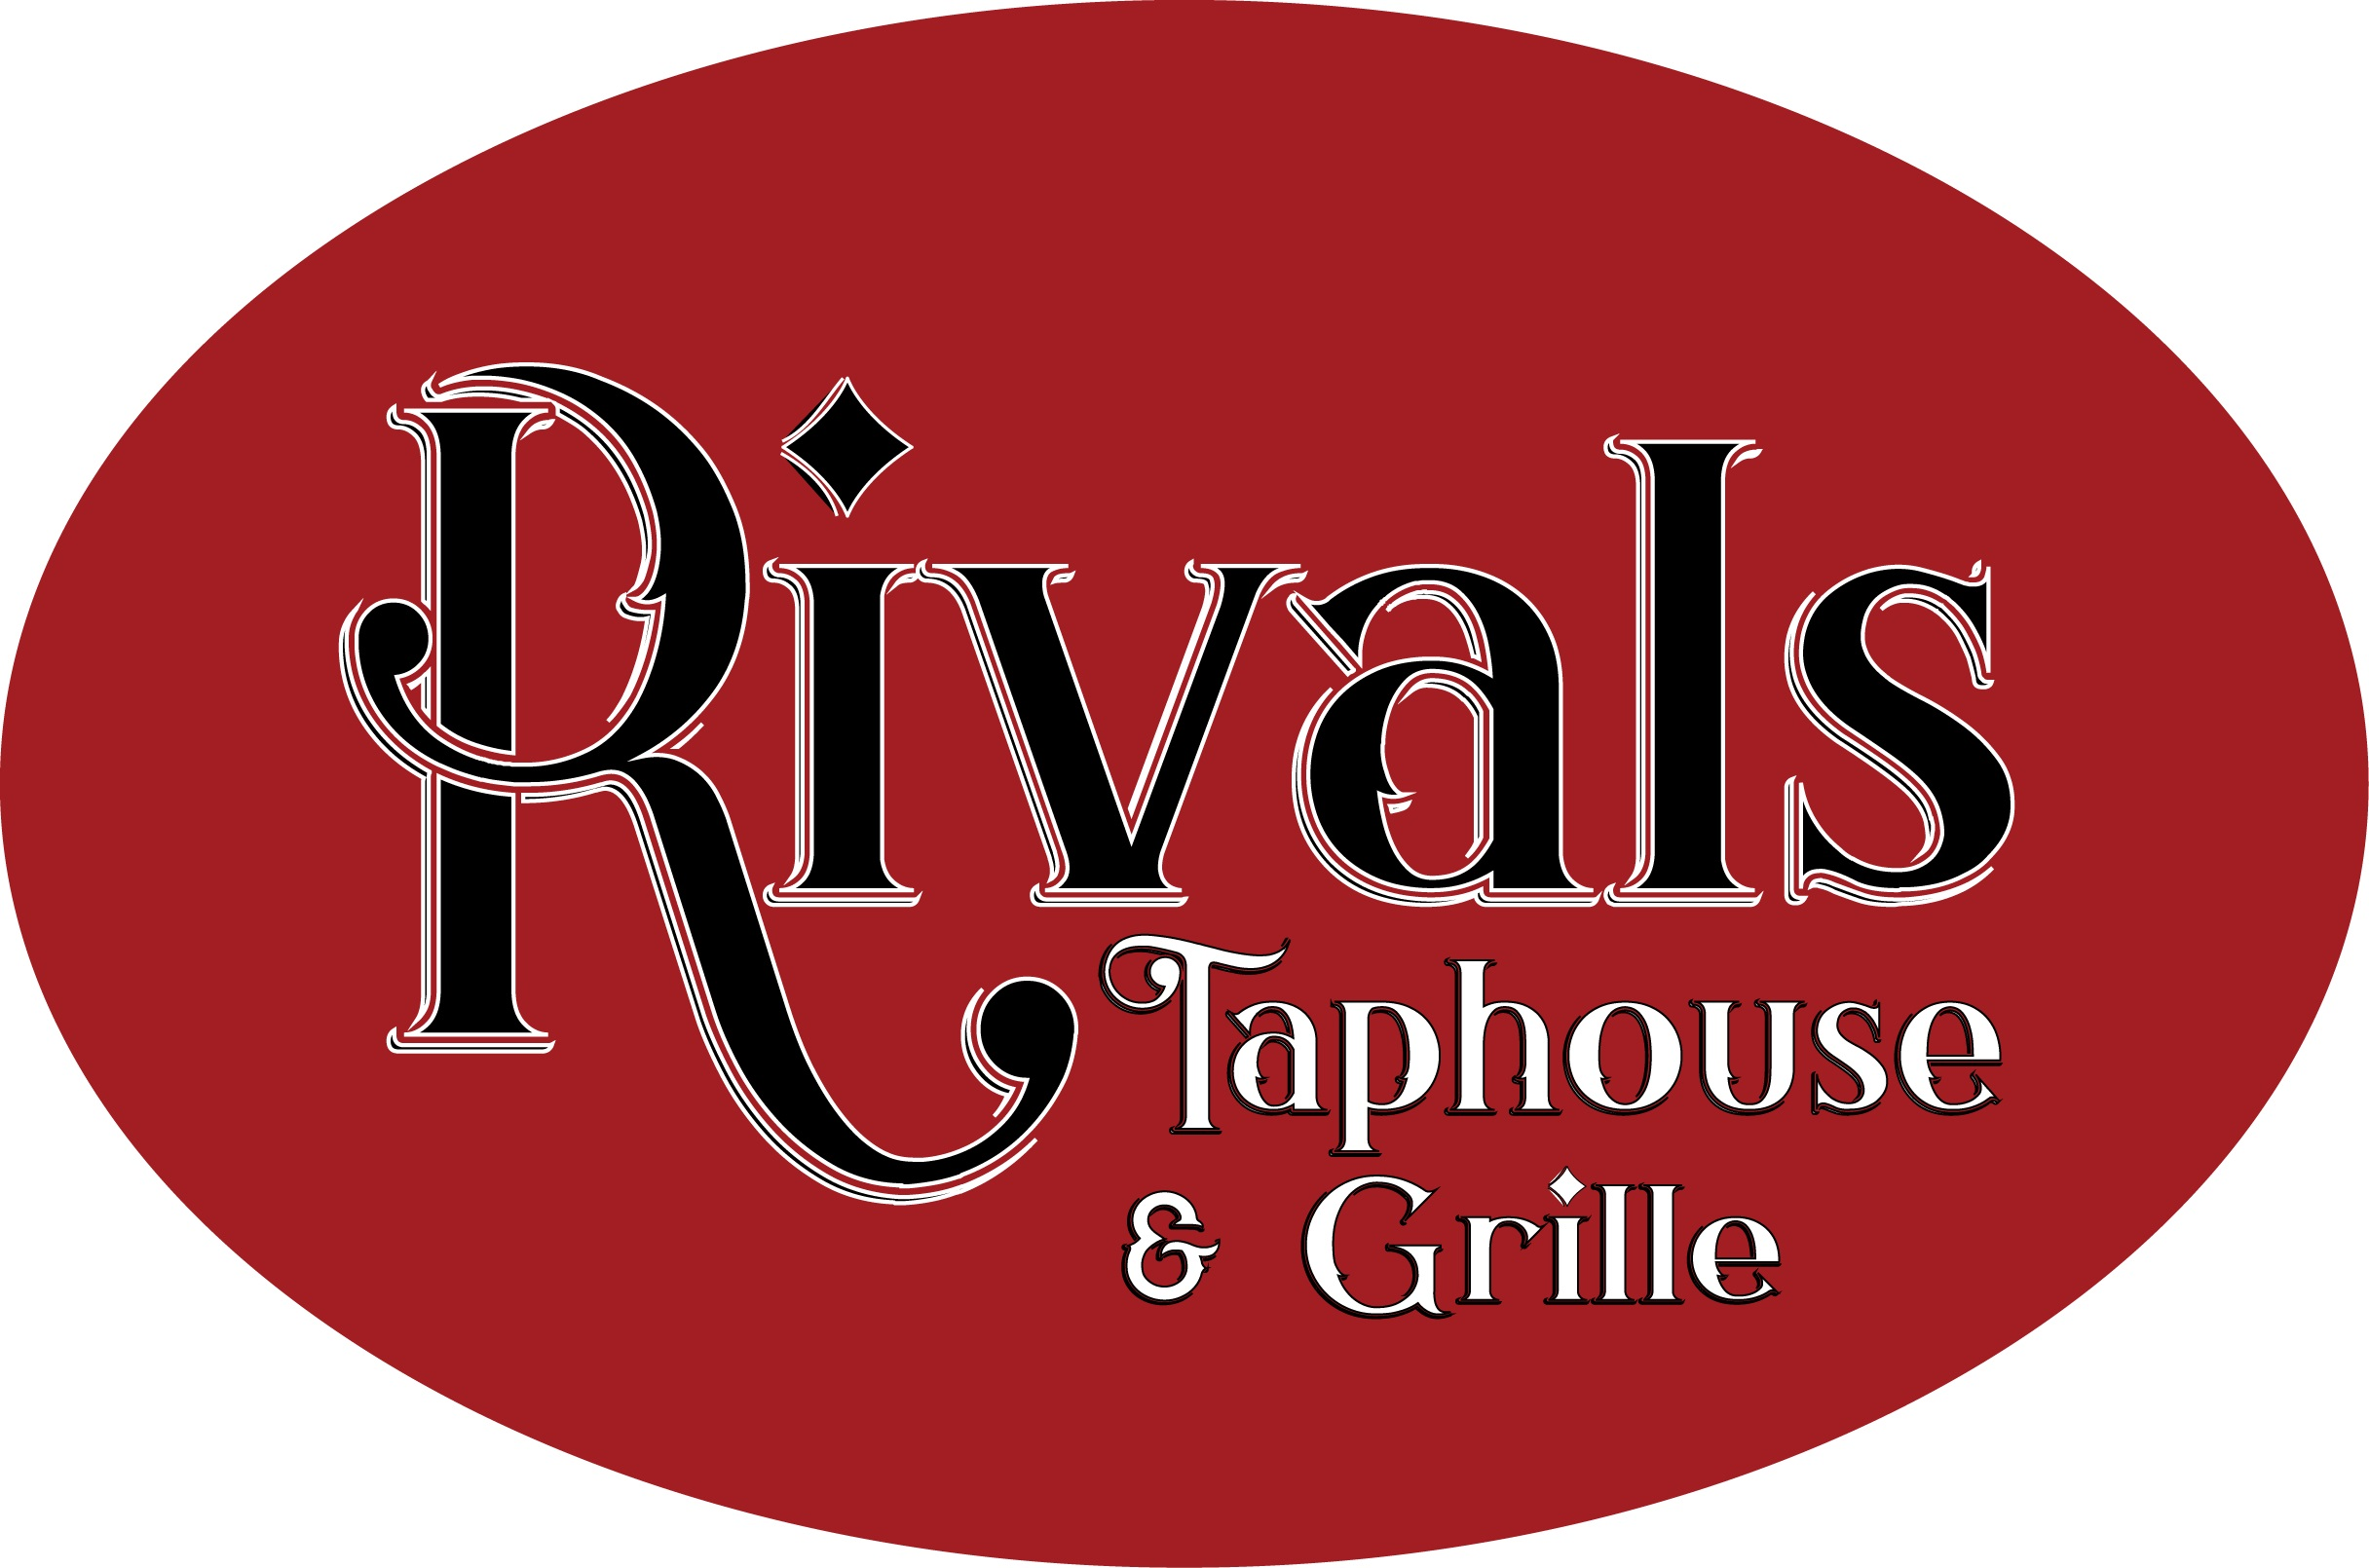 *Rival's Taphouse & Grille (Partner)